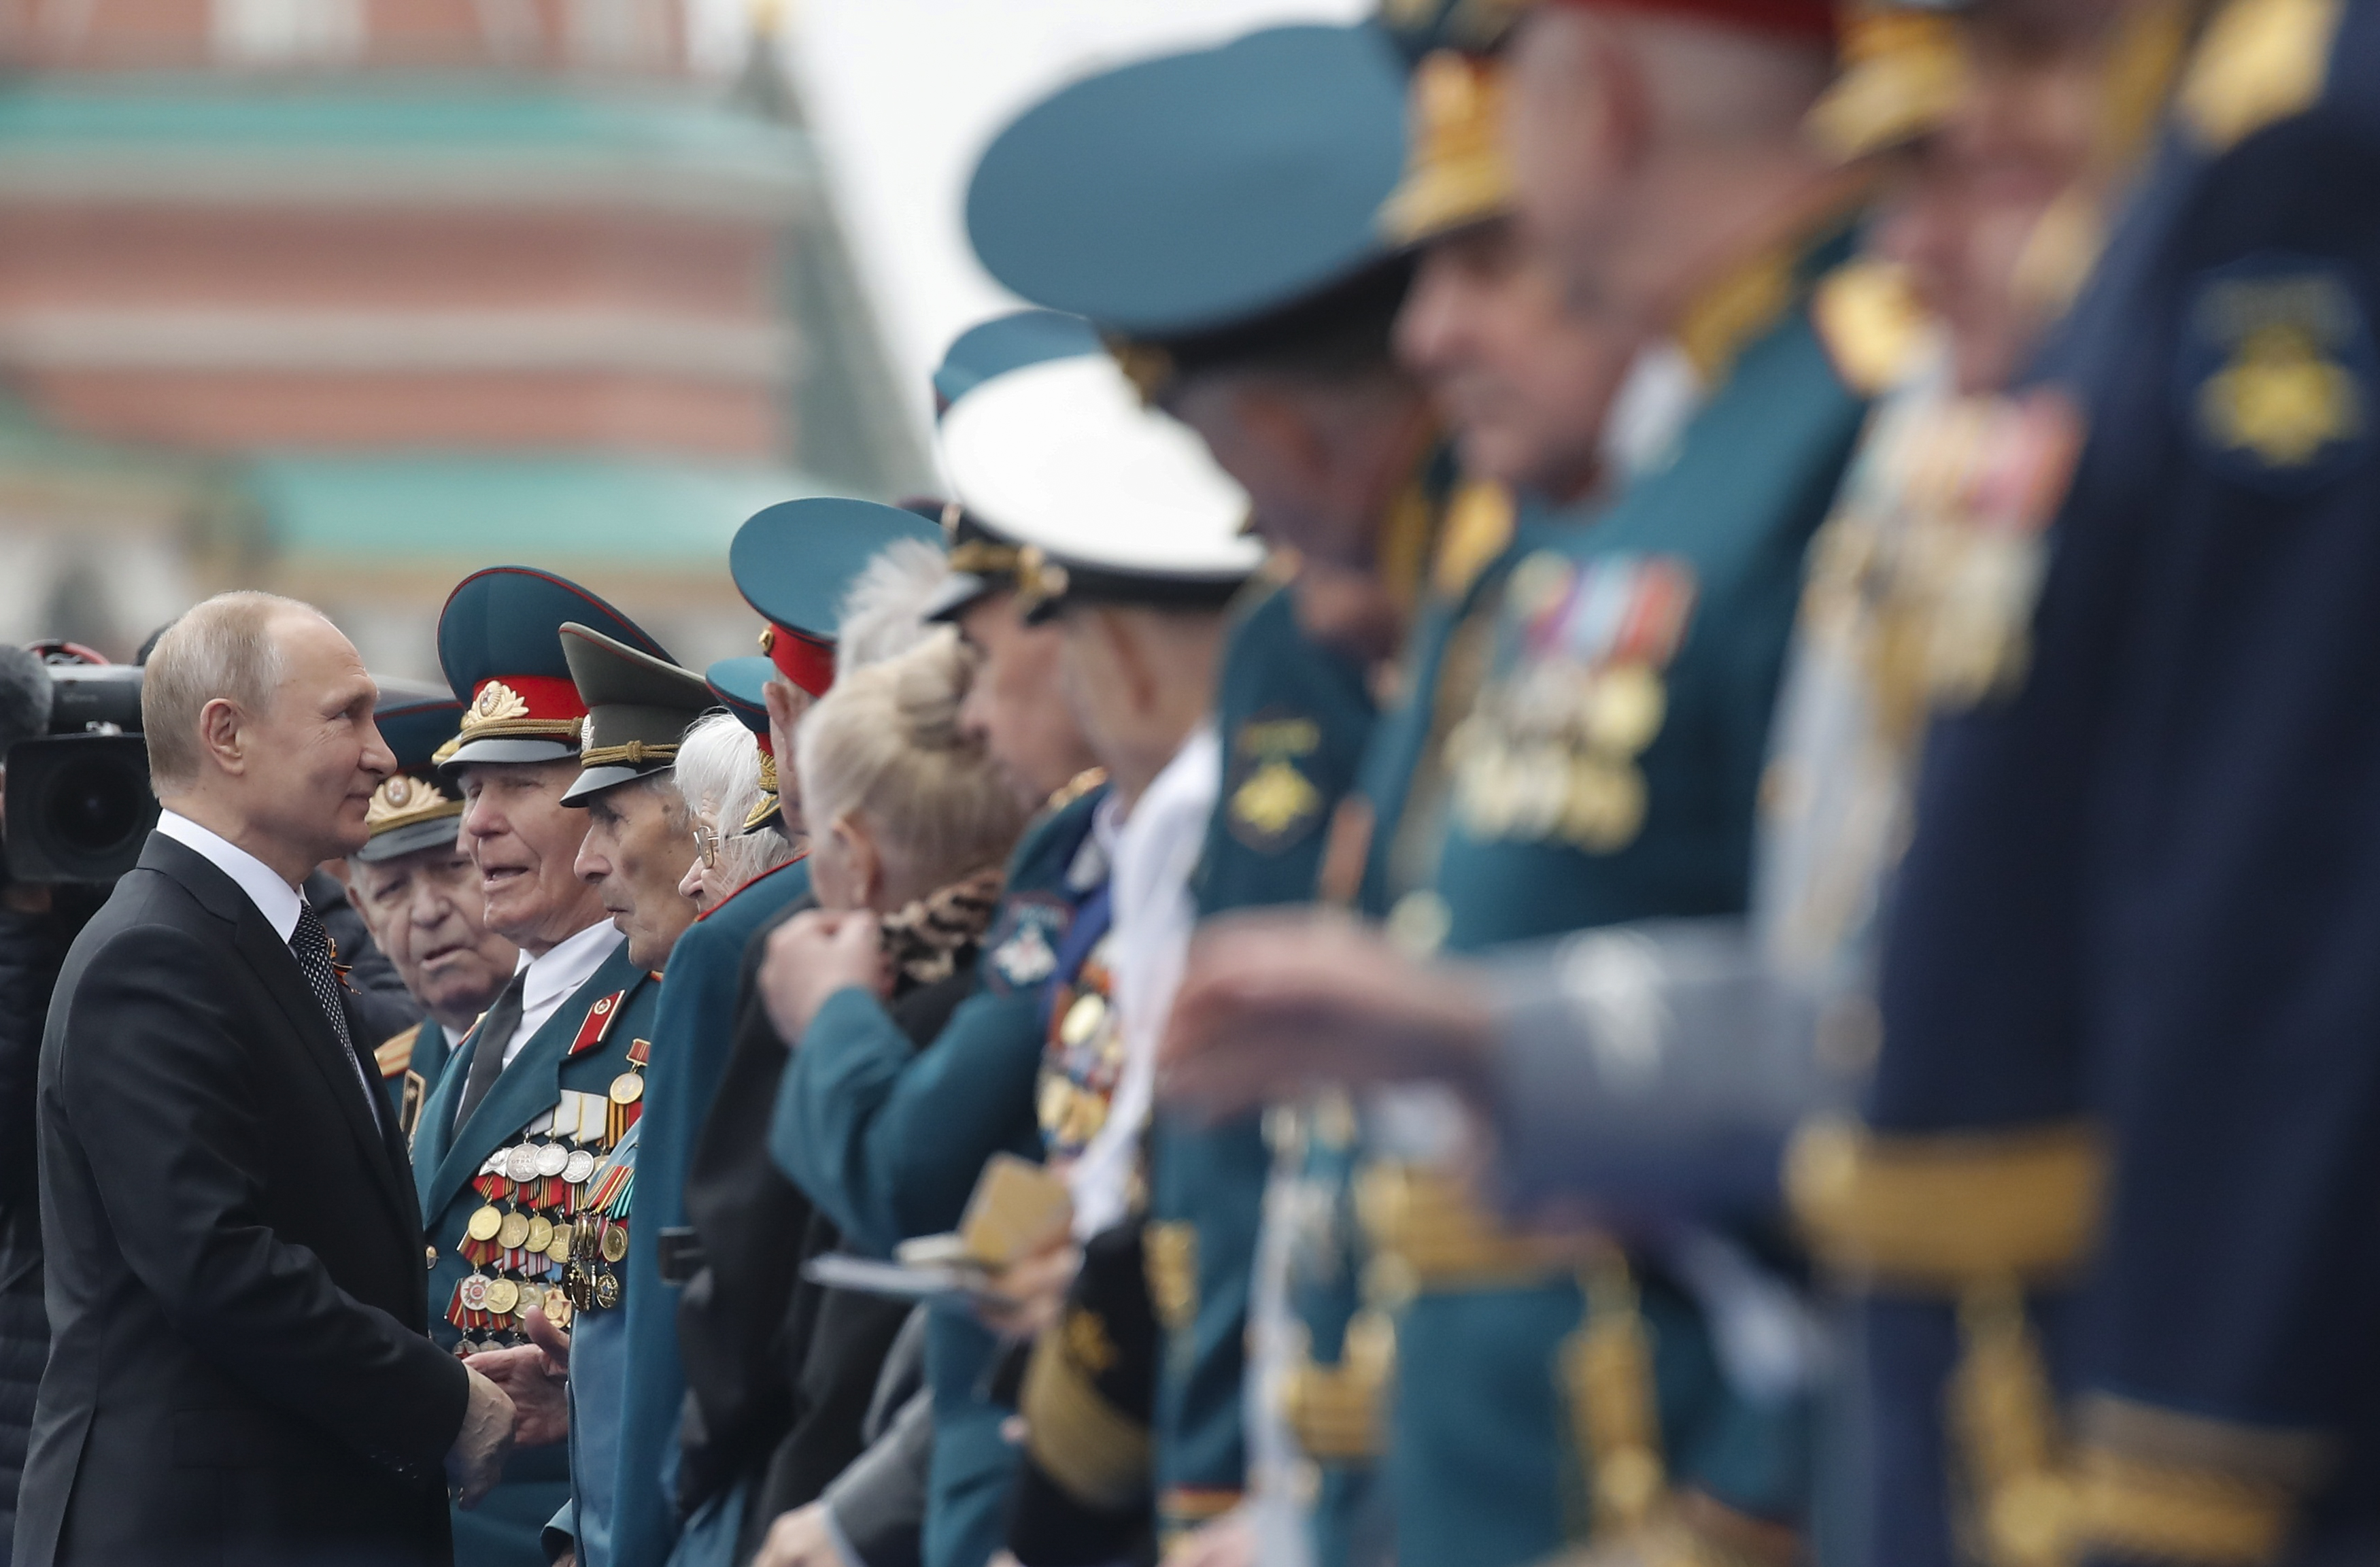 2019-05-09T085528Z_999506799_UP1EF590OSG52_RTRMADP_3_WW2-ANNIVERSARY-RUSSIA-PARADE